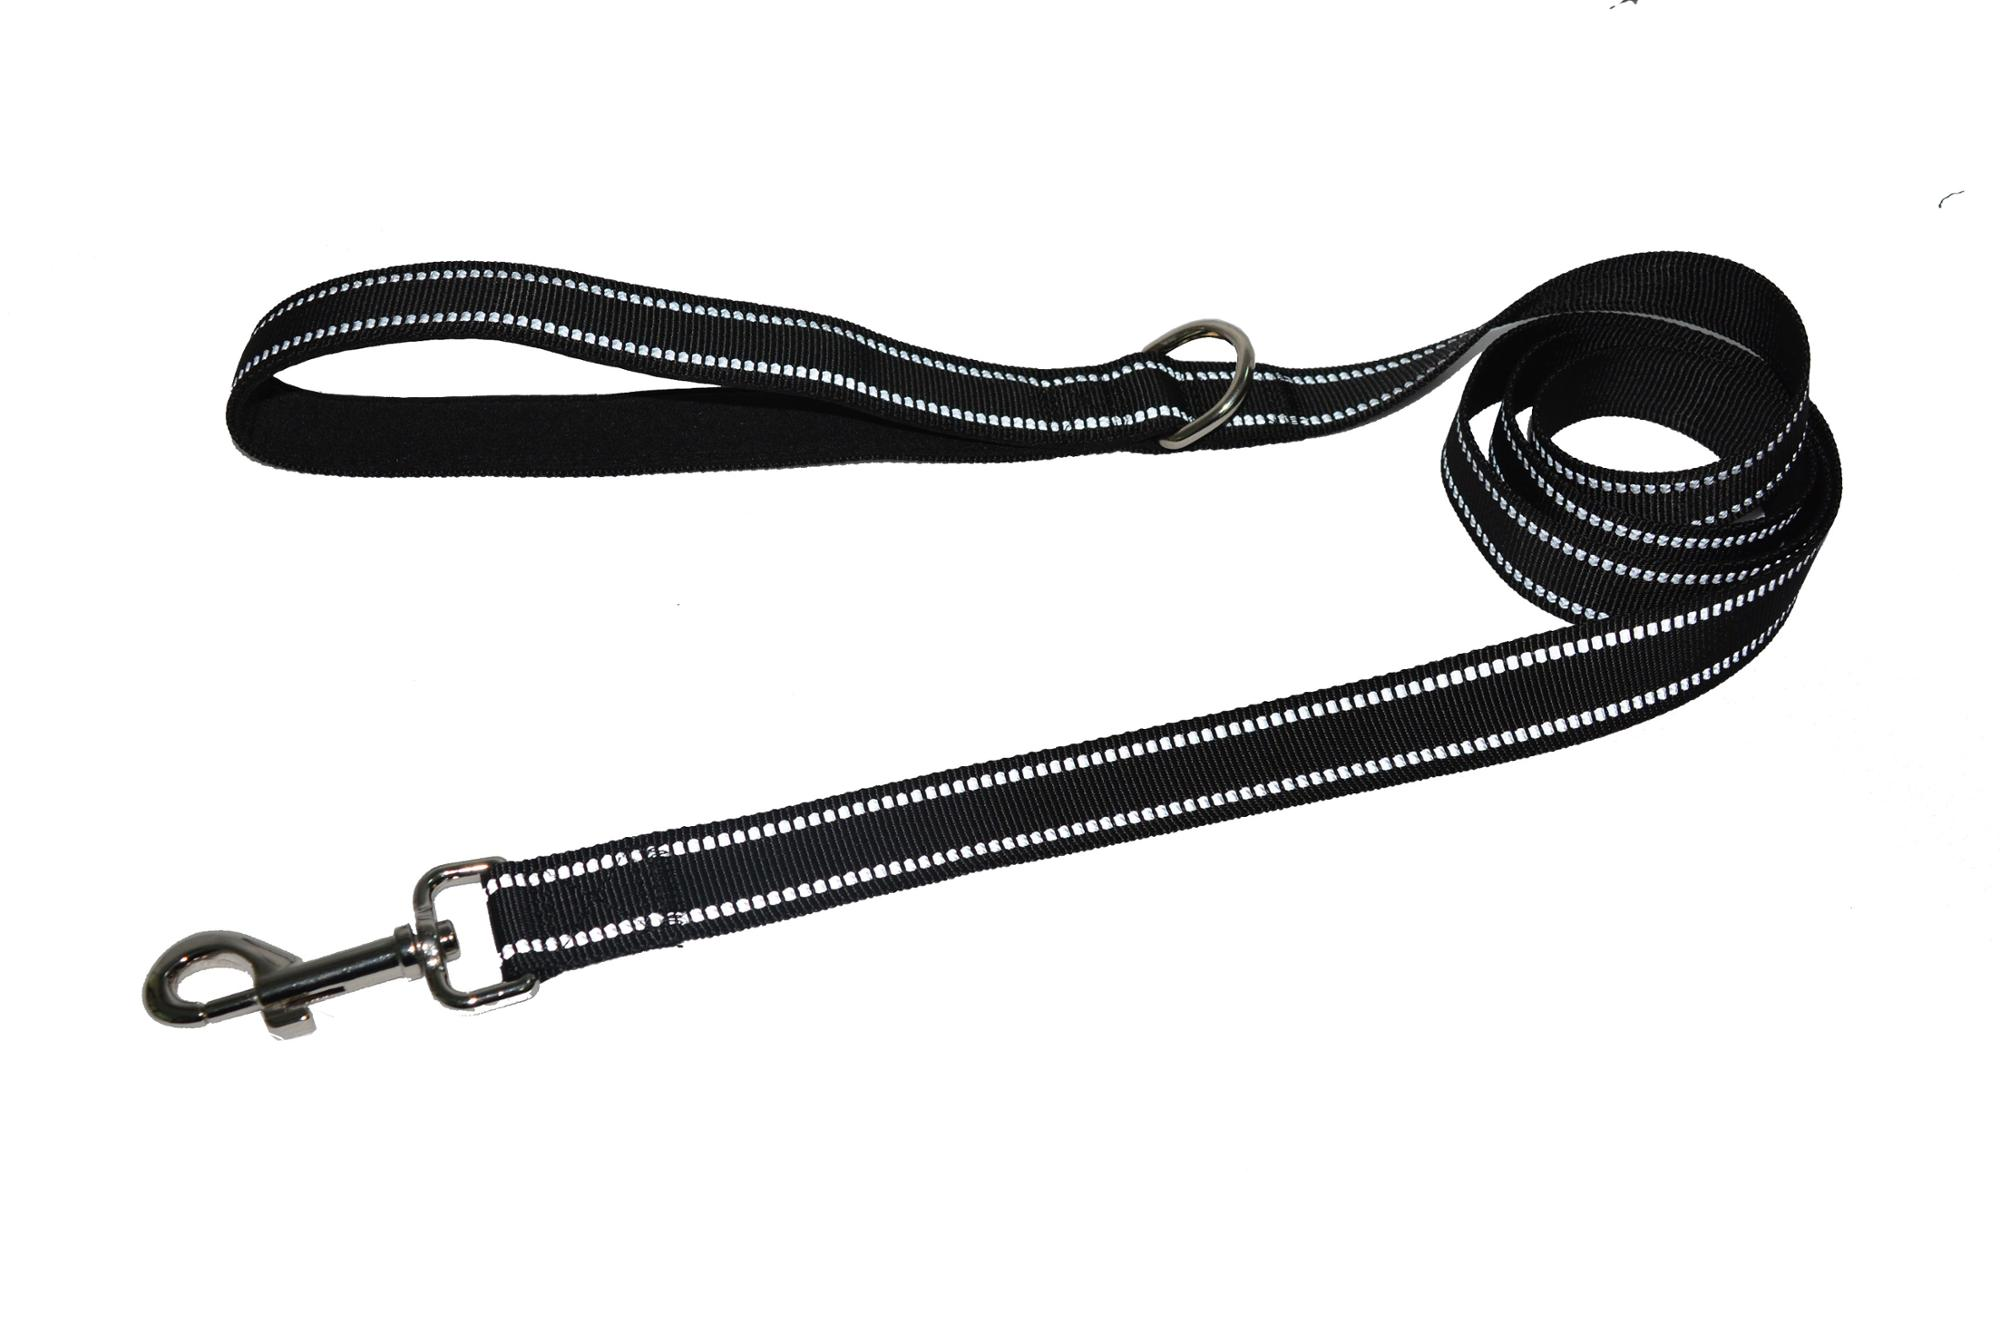 Safety Pet Seat Belt wholesale Dog Accessories Dog Leash For Running,Training,Walking